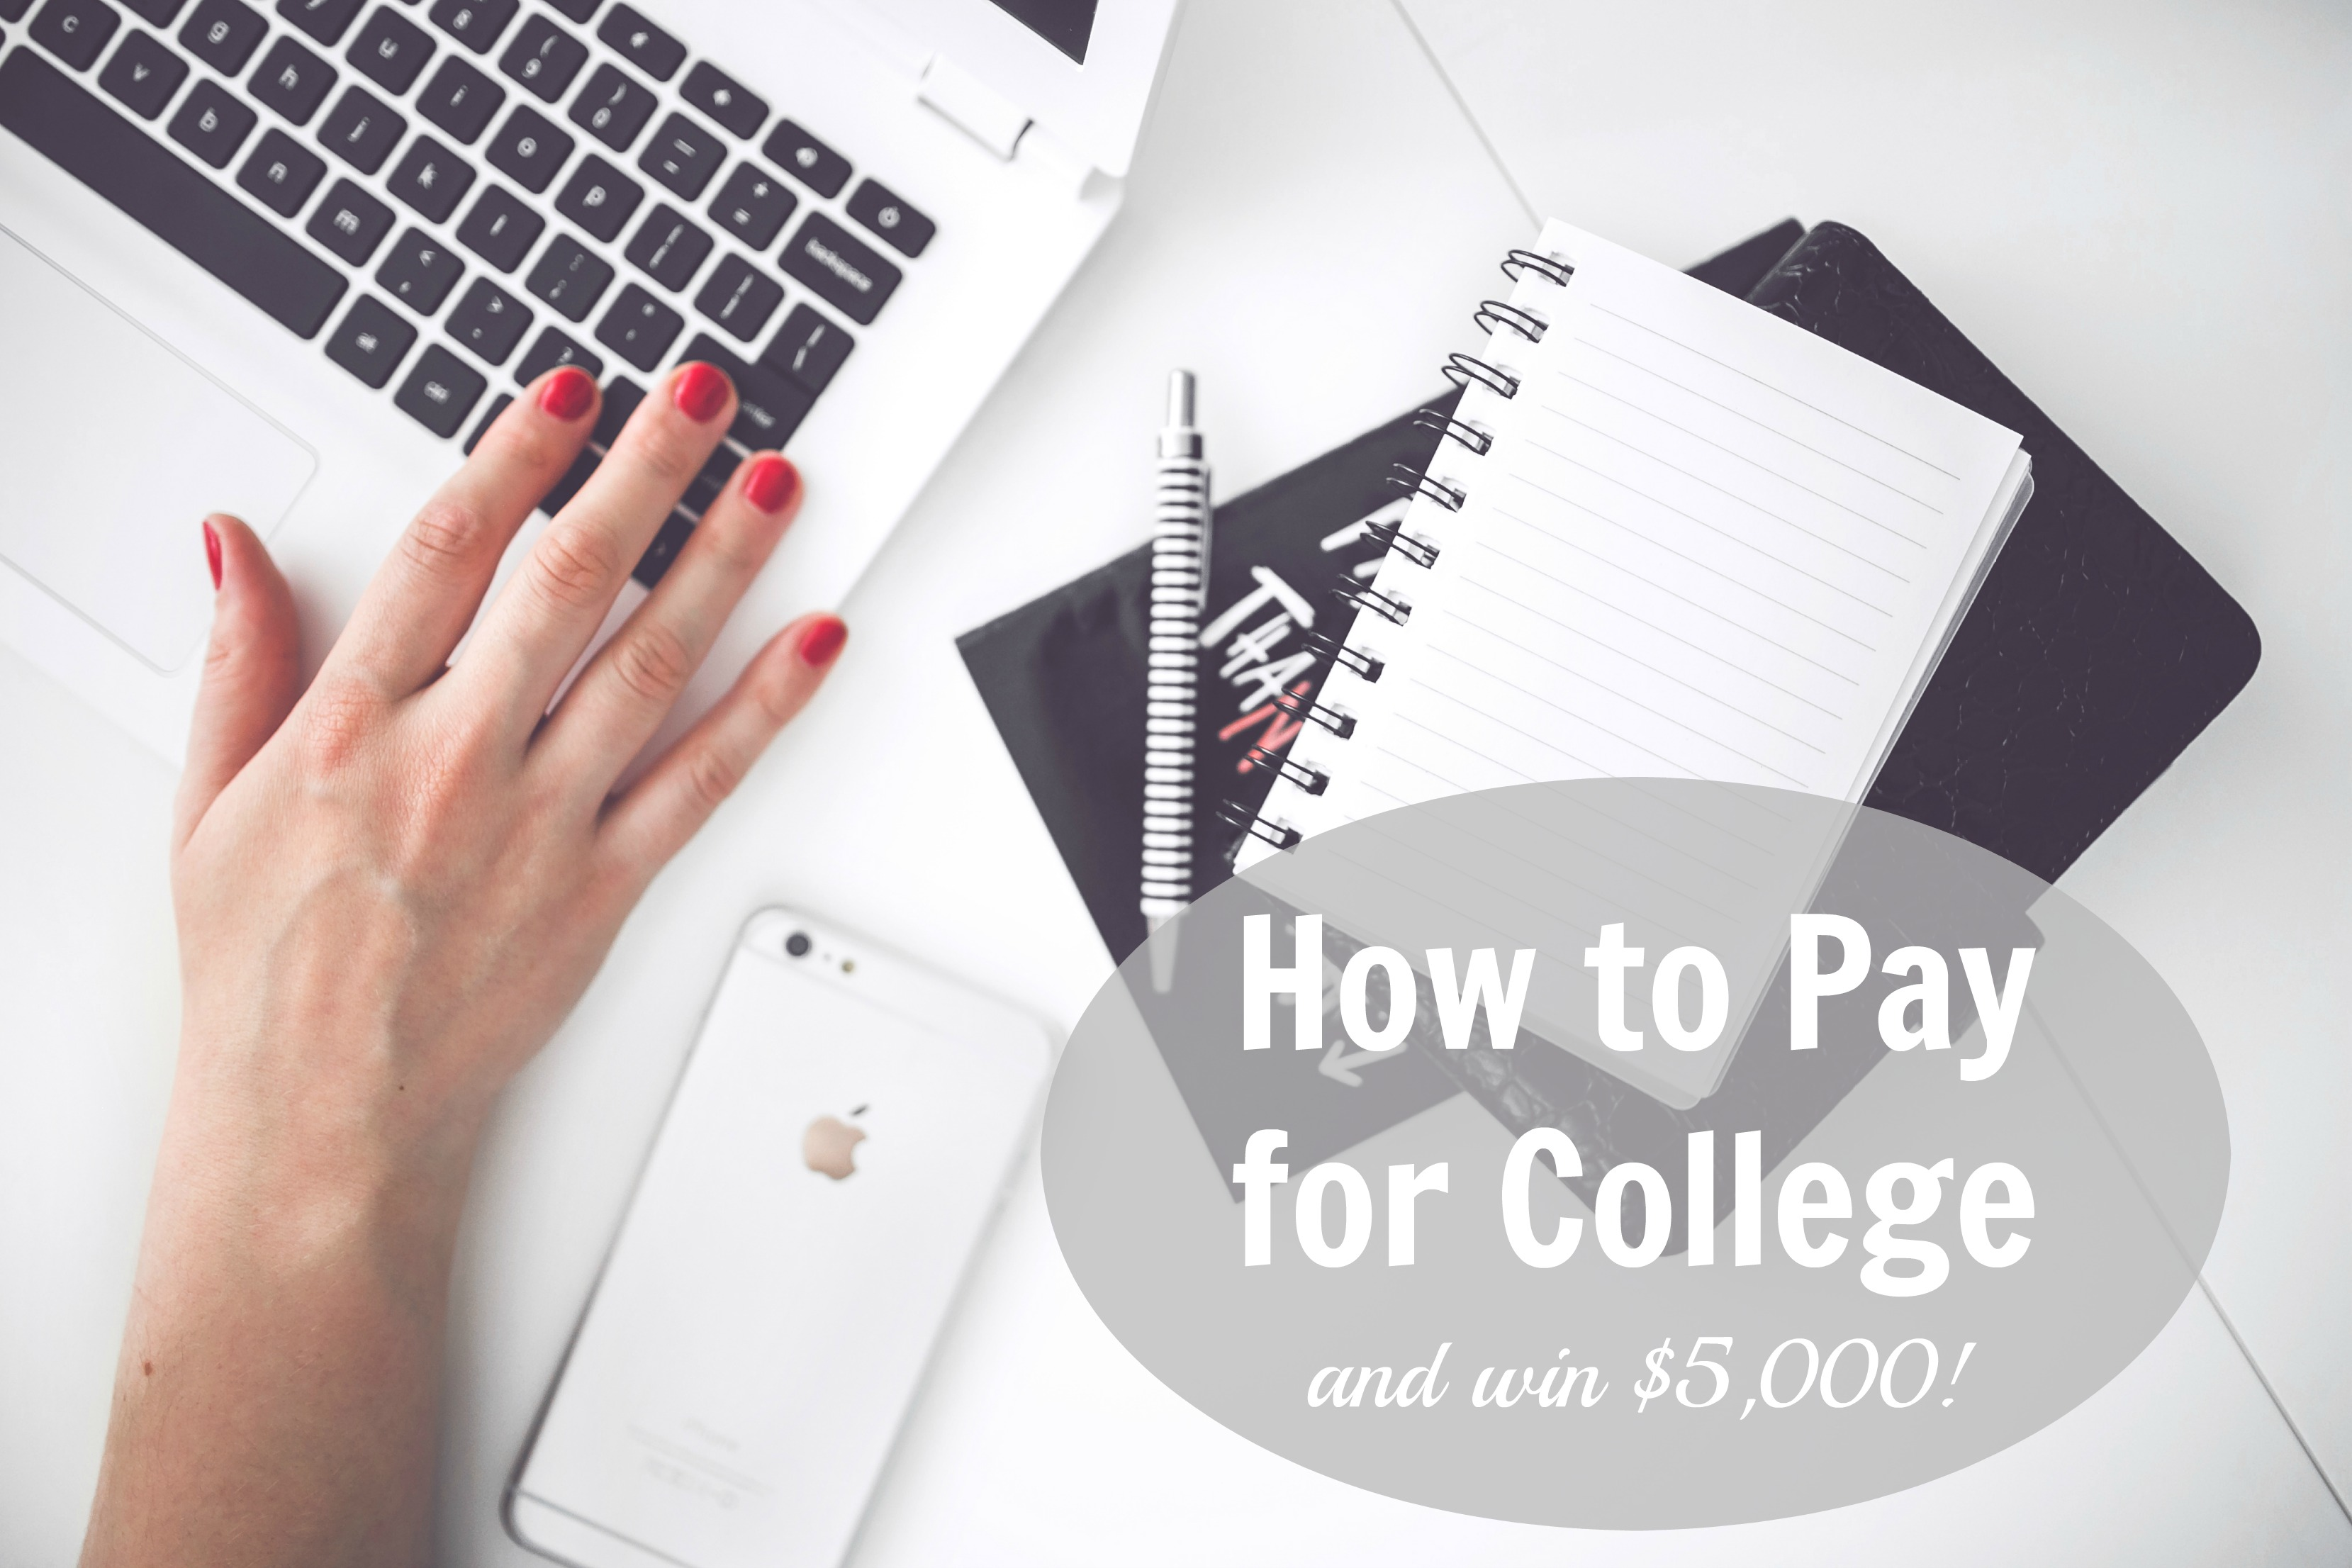 Tips and tricks on how to pay for college like navigating student loans and applying for scholarships